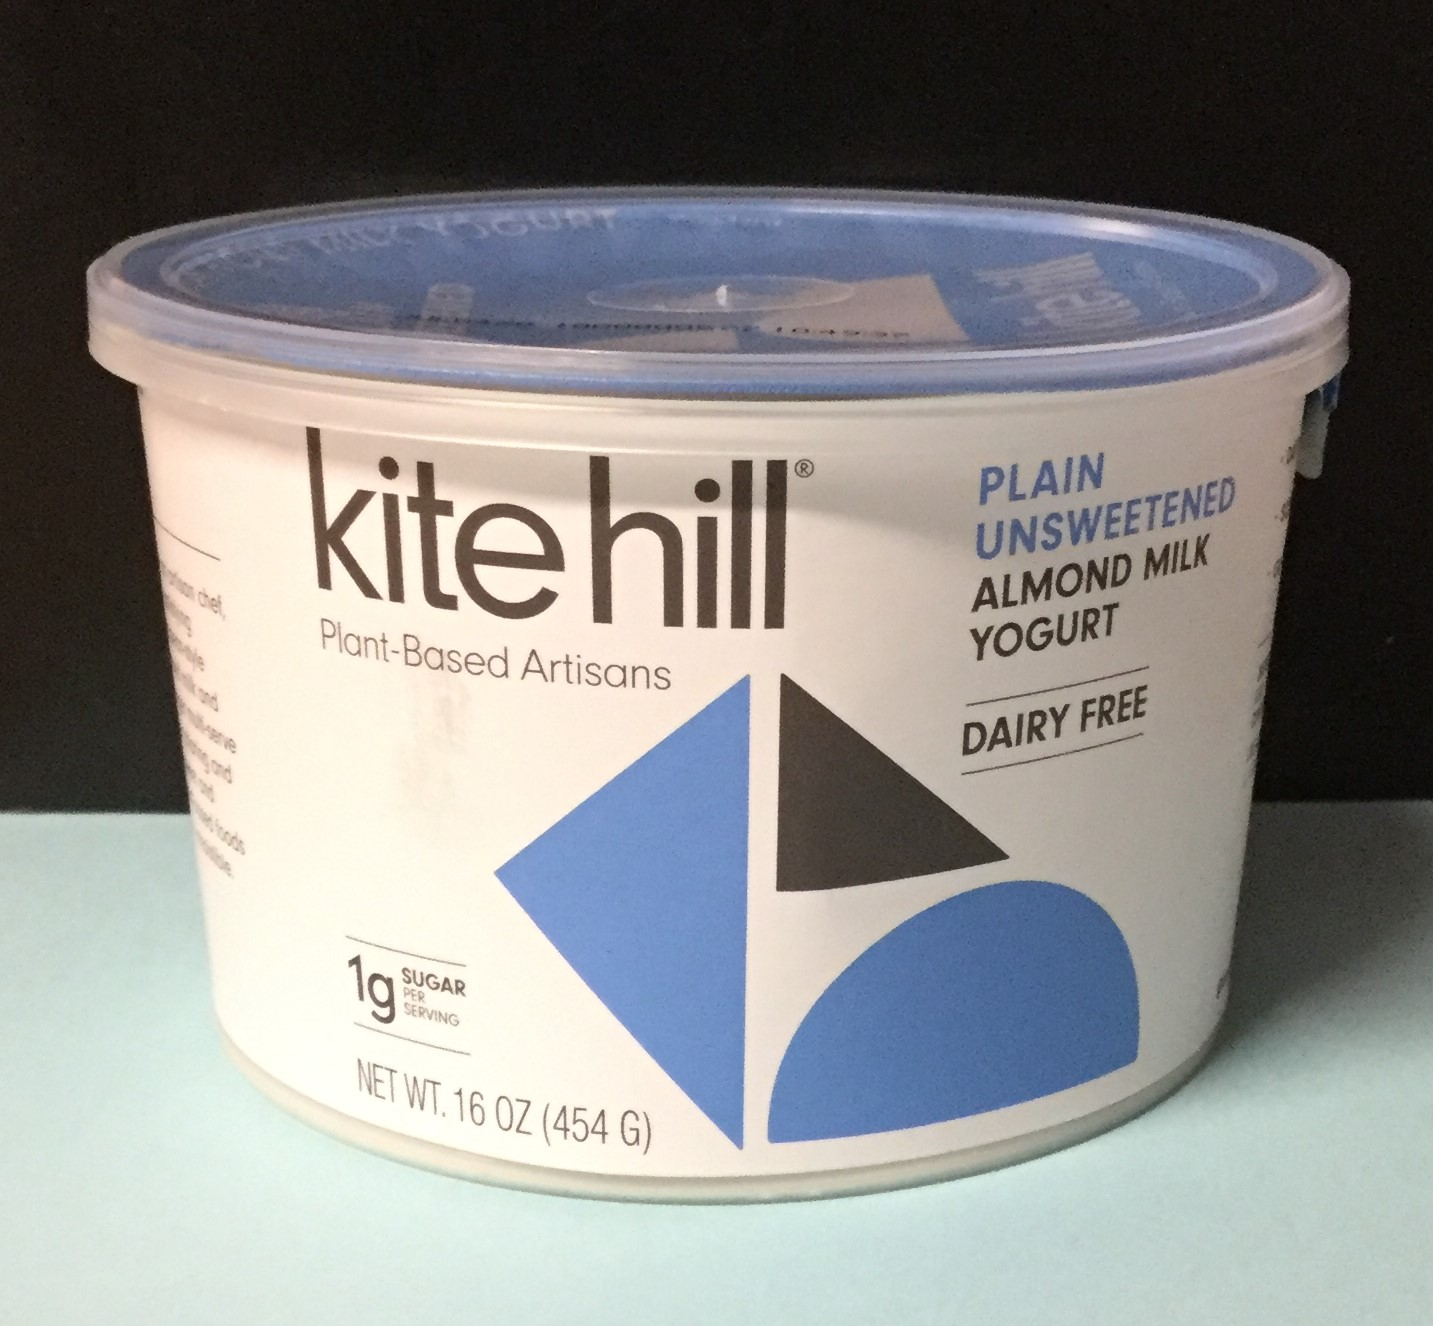 KITE HILL Plain Unsweetened Almond Milk Yogurt